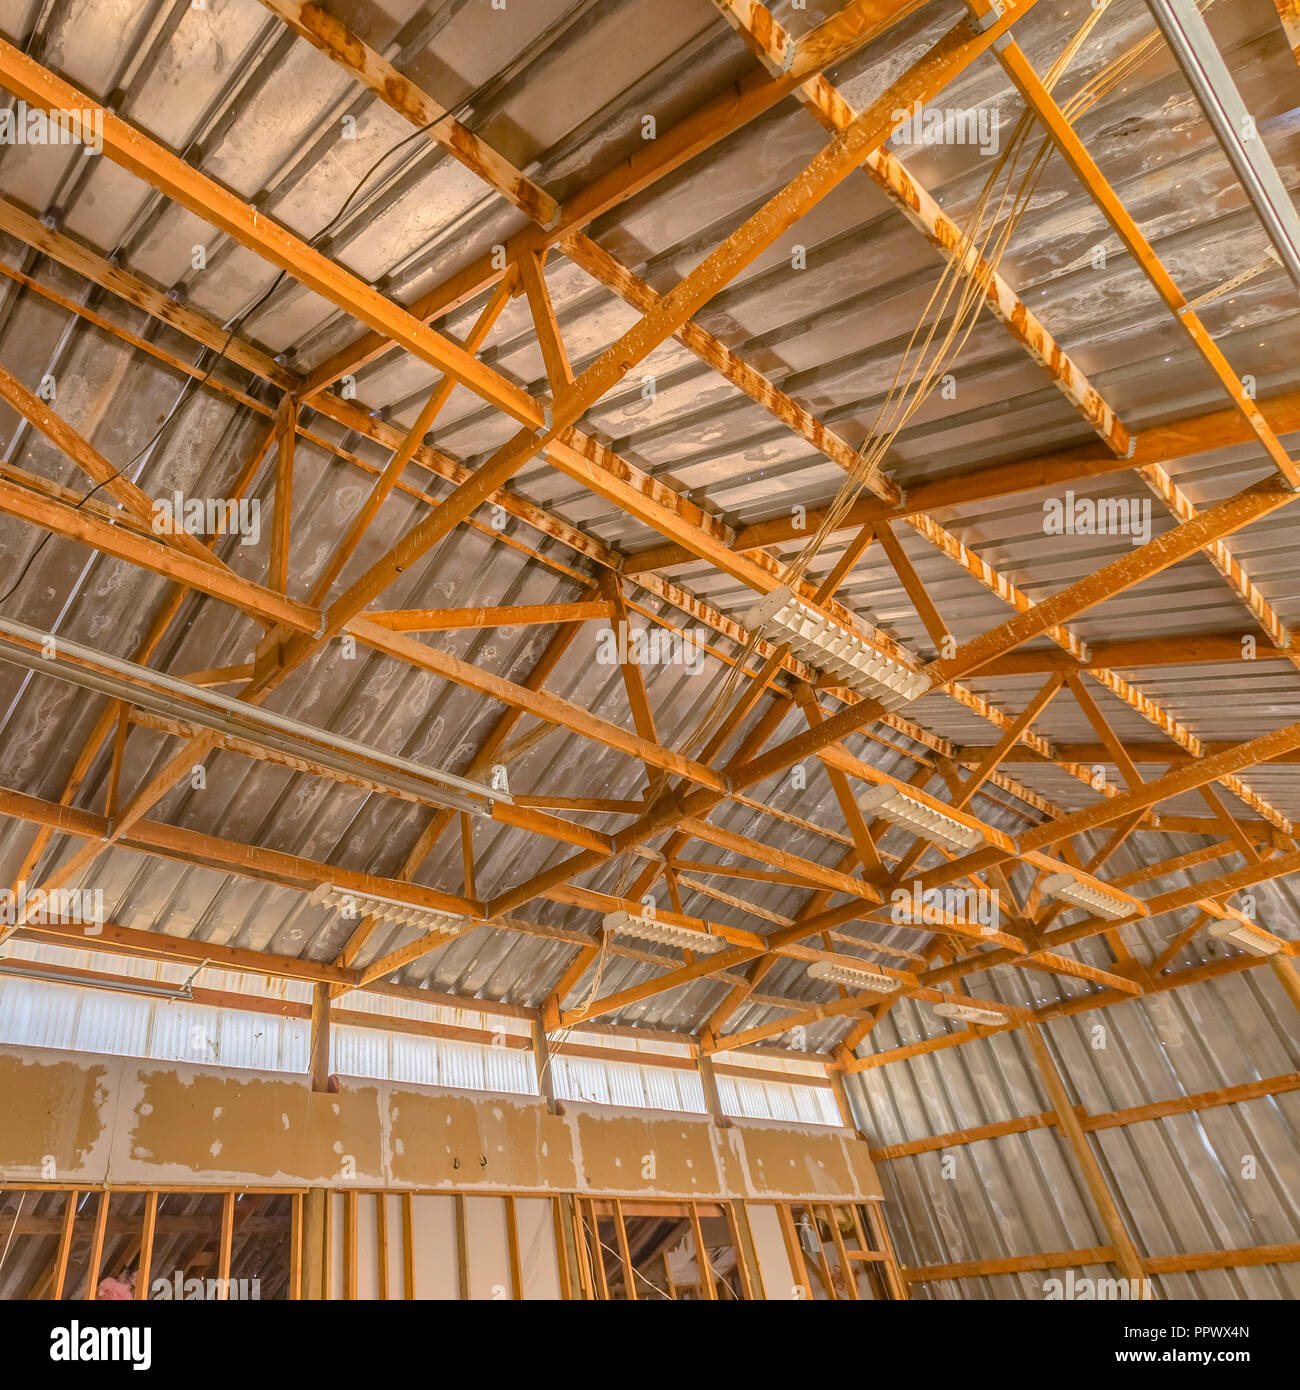 Interior of a barn with metal roof and walls - Stock Image